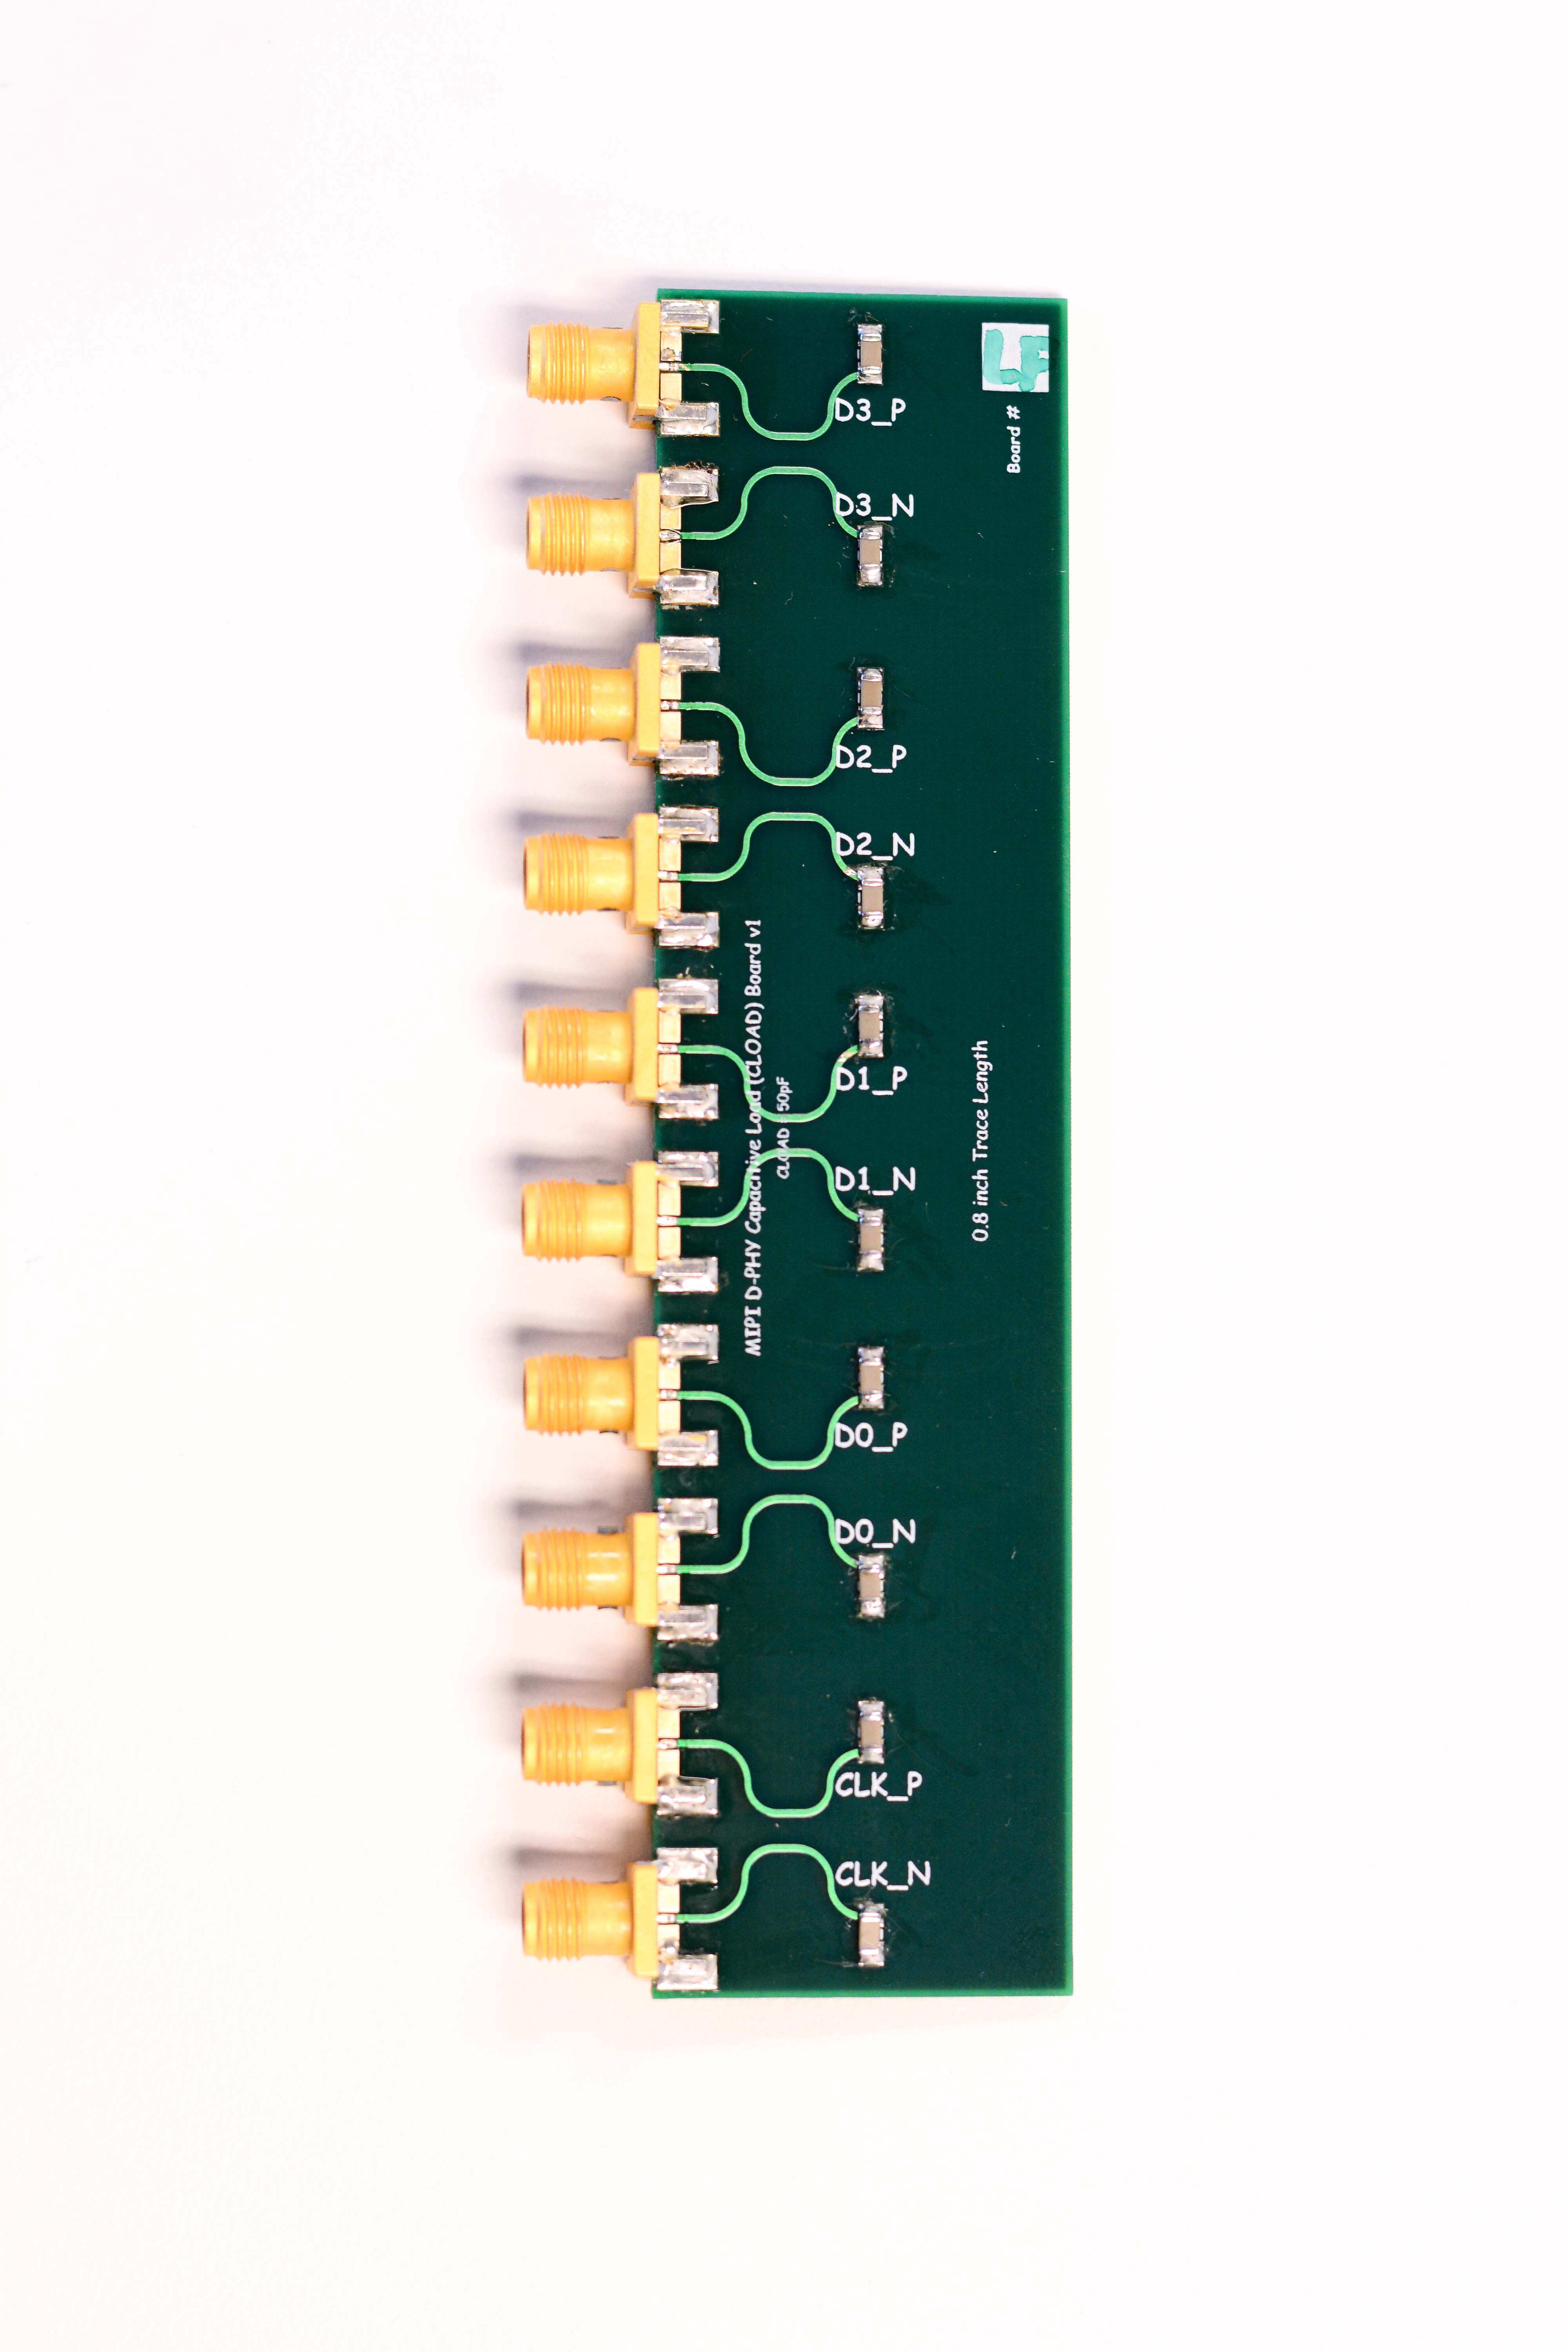 MIPI D-PHY Capacitive Load (CLOAD) Fixture